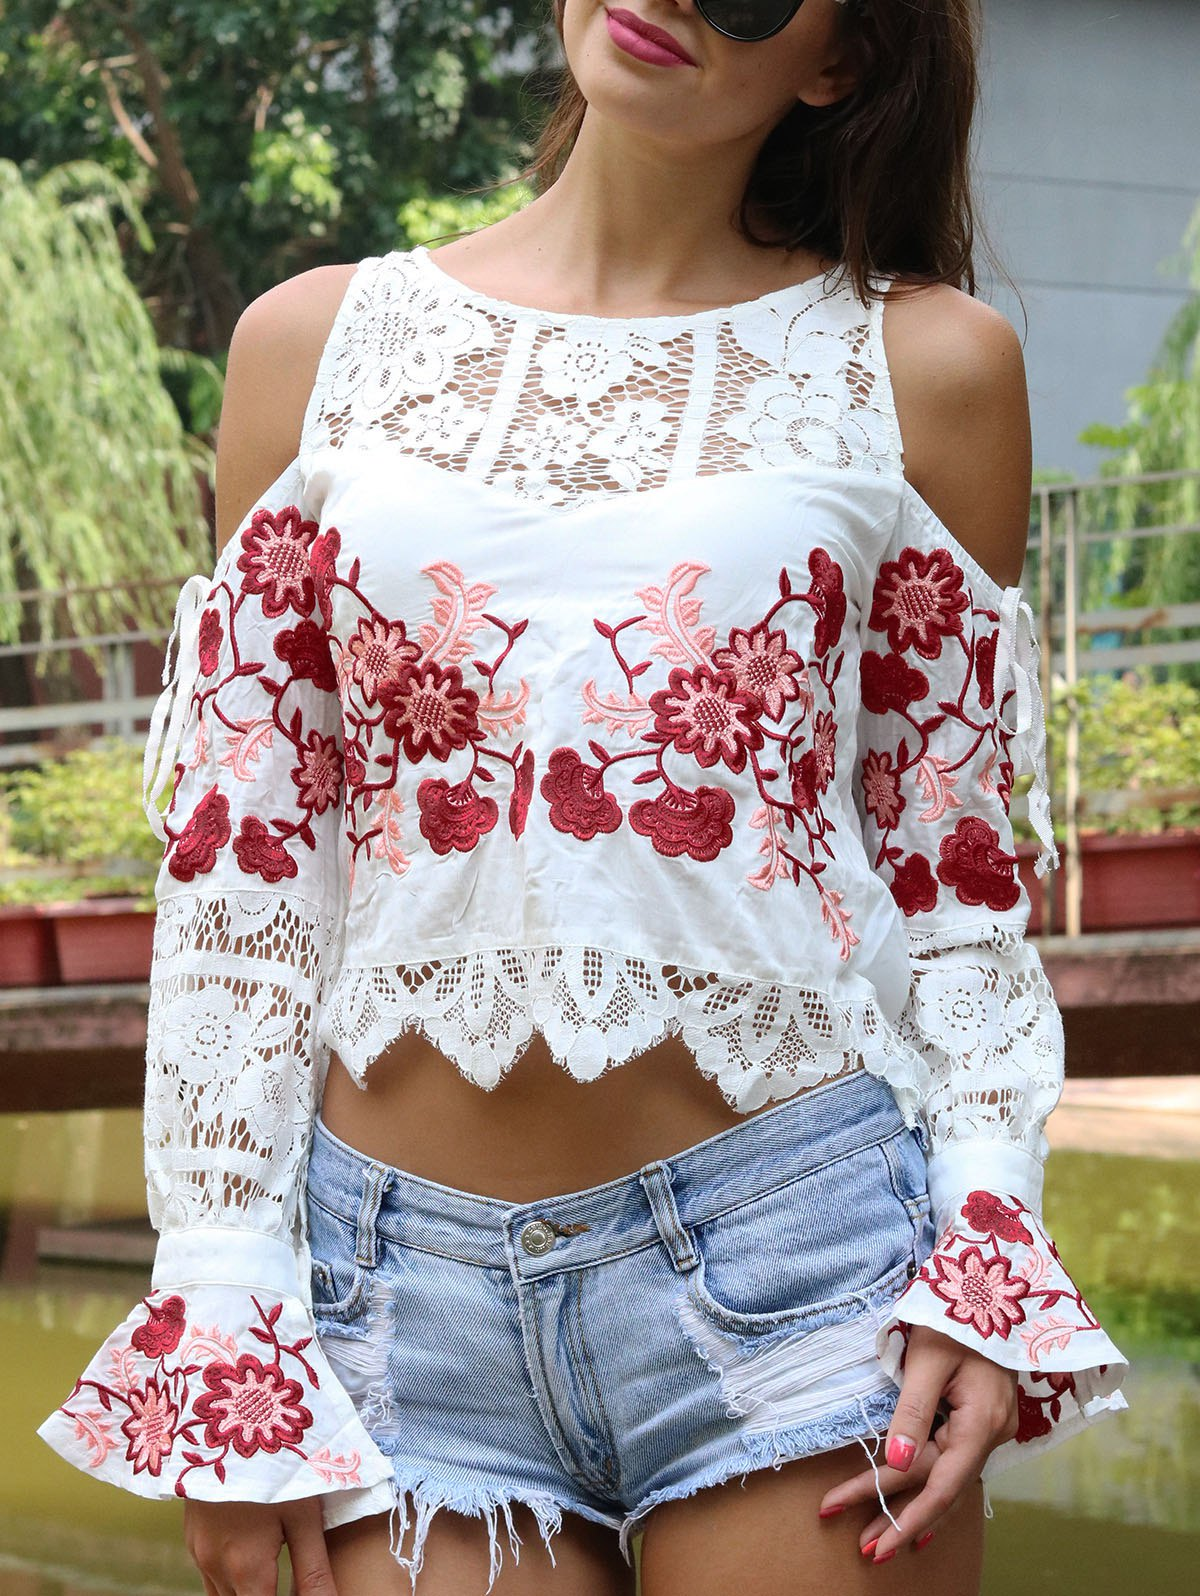 Sweet Women's Floral Embroidered Cold Shoulder Crop Top - WHITE S